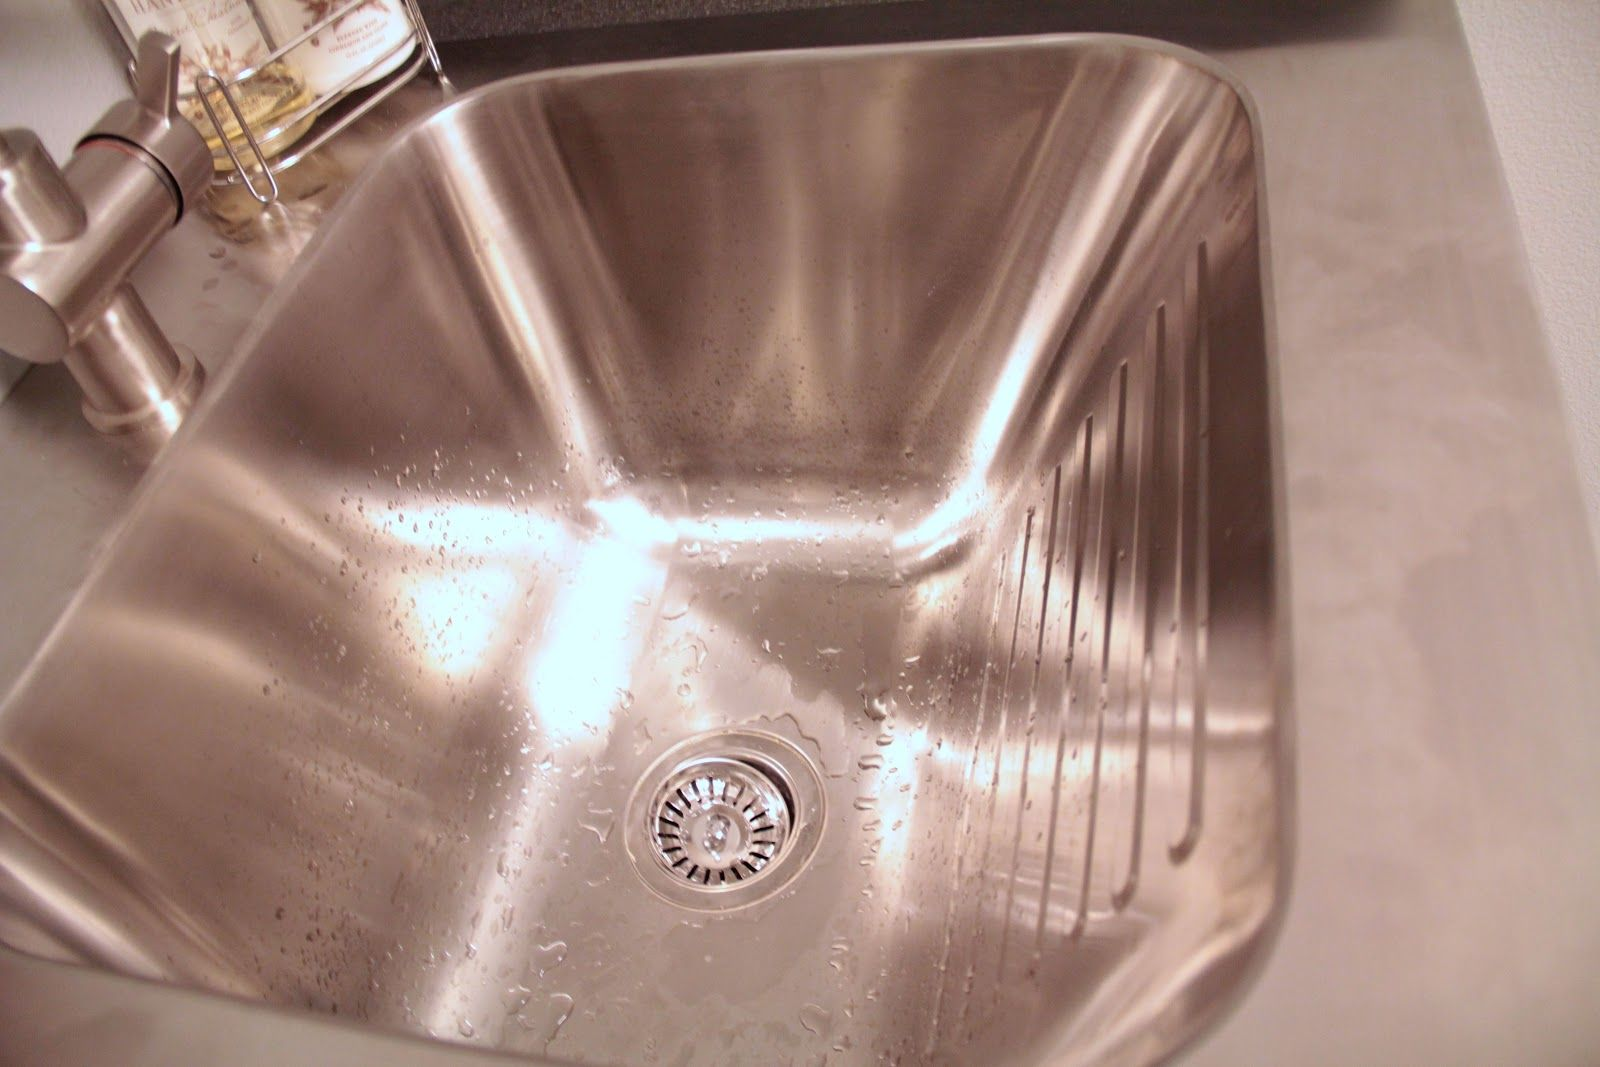 Pin By Christina Rife On Laundry Room Laundry Room Sink